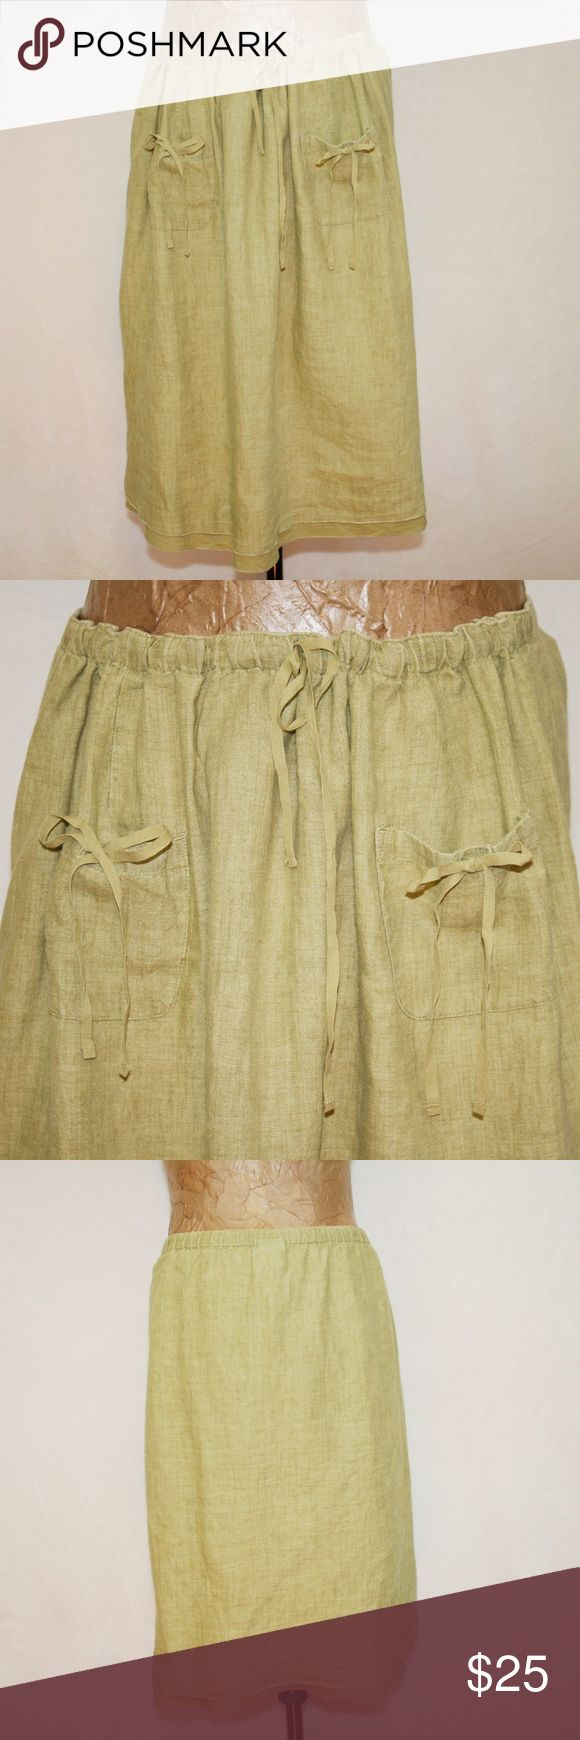 J. Jill Olive Linen Peasant Skirt Elastic in back, but draw string in front that only tightens up the front. Has matching draw string on 2 front pockets. Cute hem with a hint at an under layer. 100% Linen.  Skirt is 38 inches laying flat and with minimal gathering of drawstring, or stretch on elastic.  Length of skirt is 25 inches.  (0930) J. Jill Skirts Midi